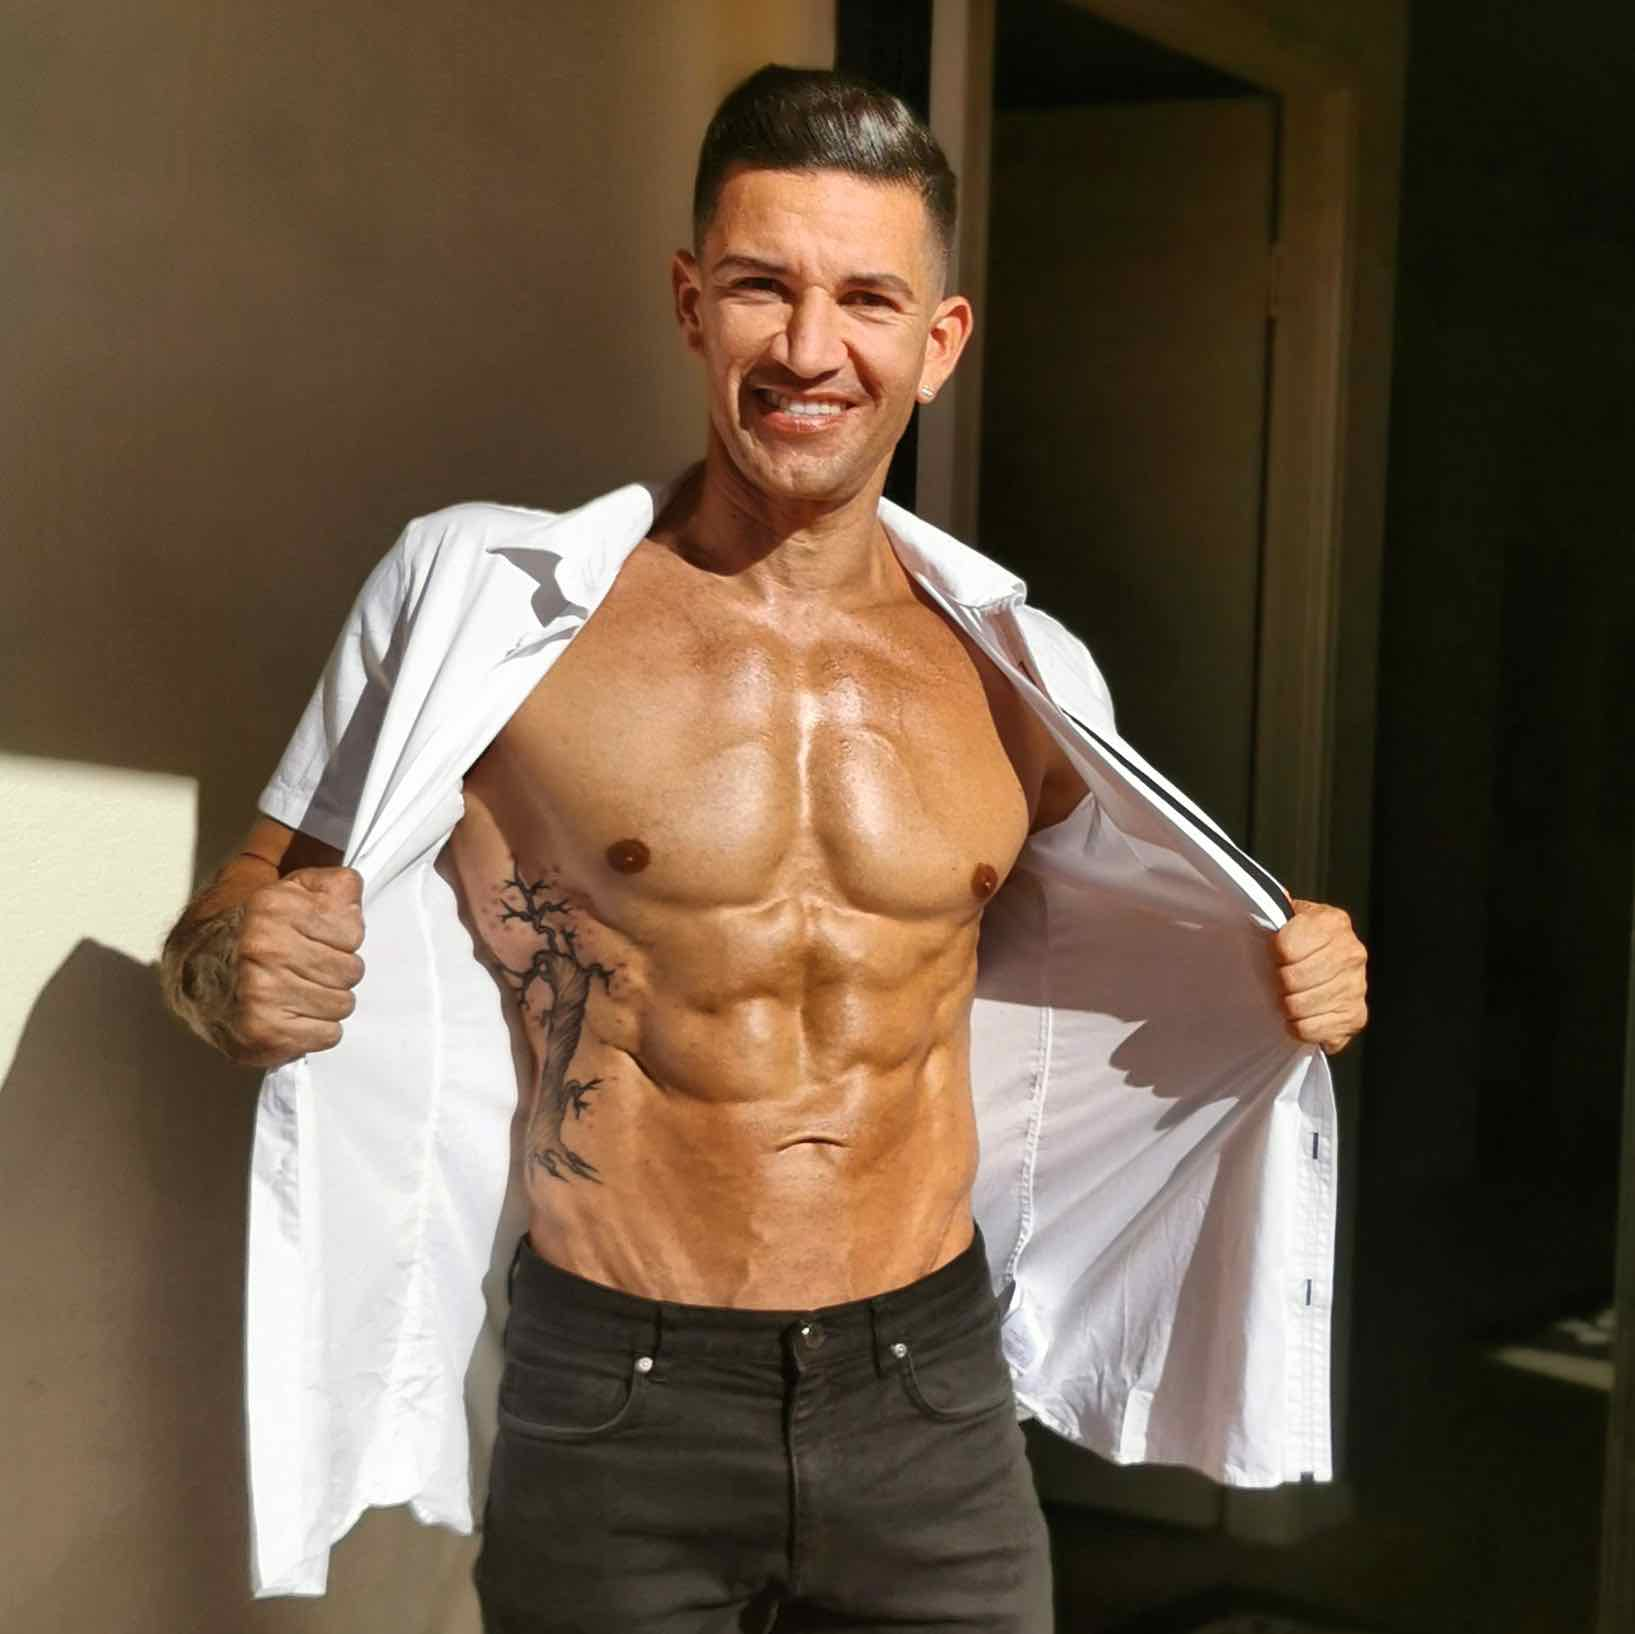 South BRisbane topless waiters for hire, male waiters in brisbane, hens party bookings available.